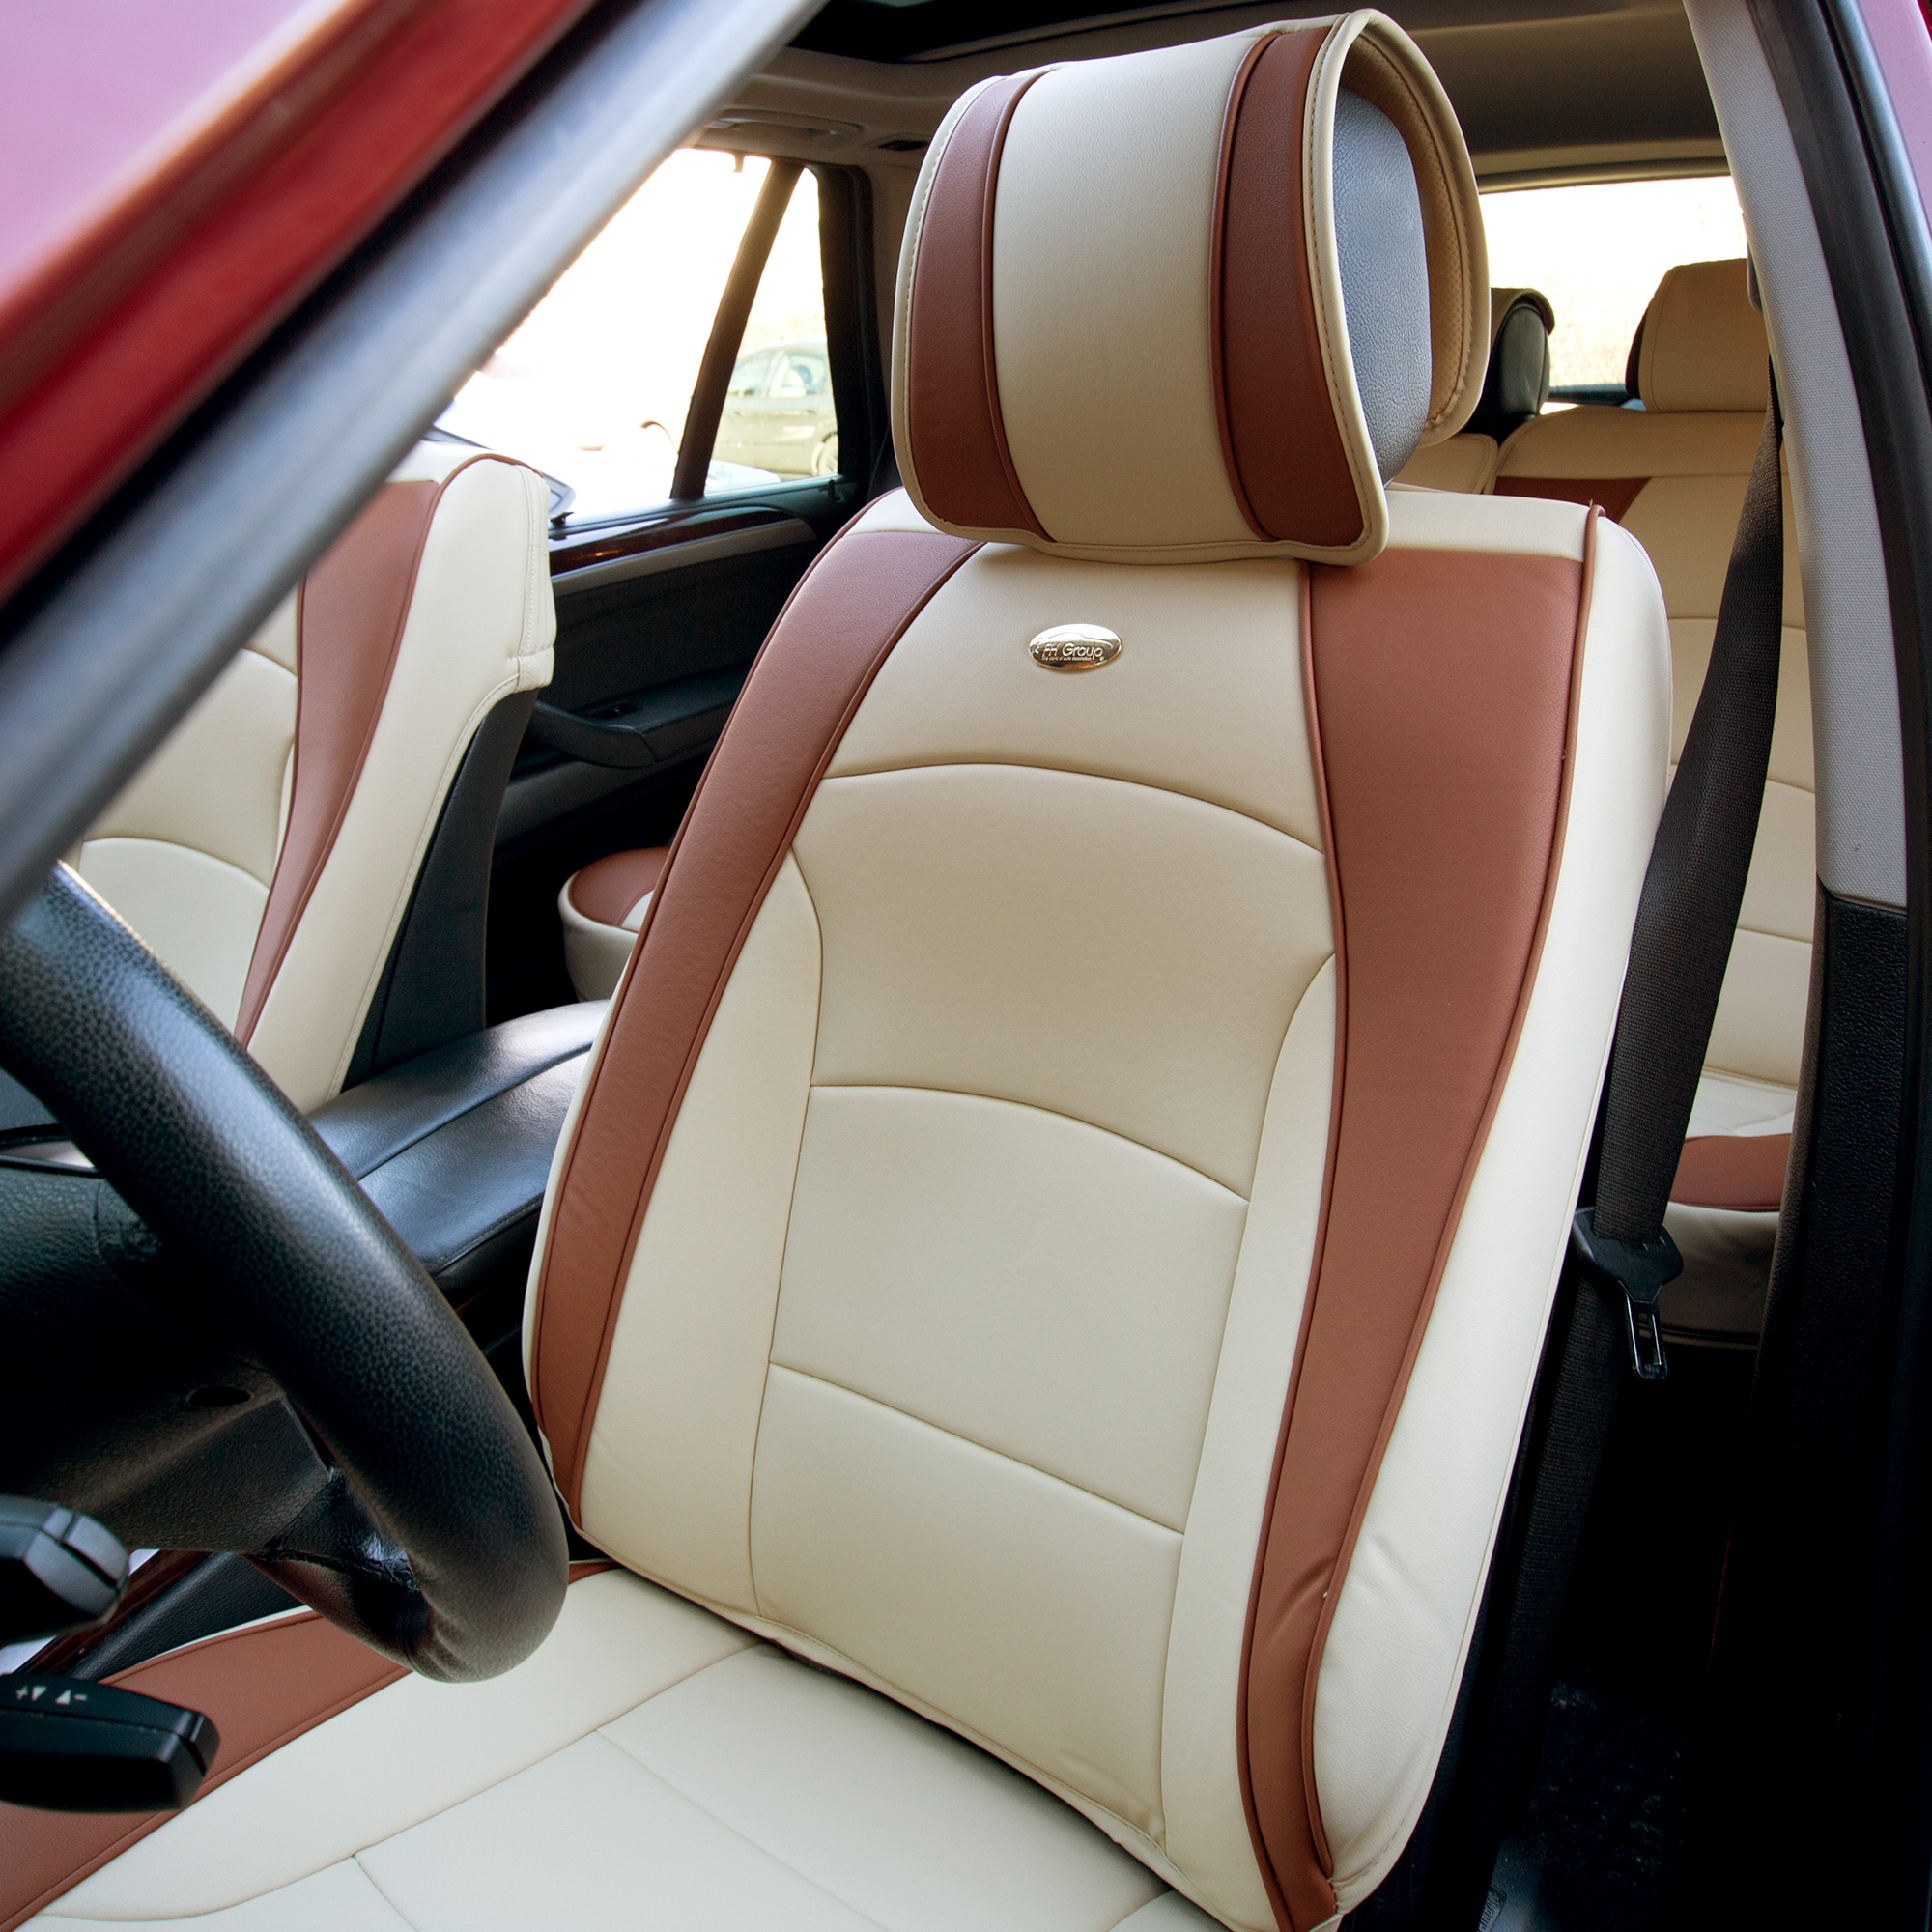 Luxury-Leather-Seat-Cushion-Covers-Front-Bucket-Pair-11-Color-Options thumbnail 4